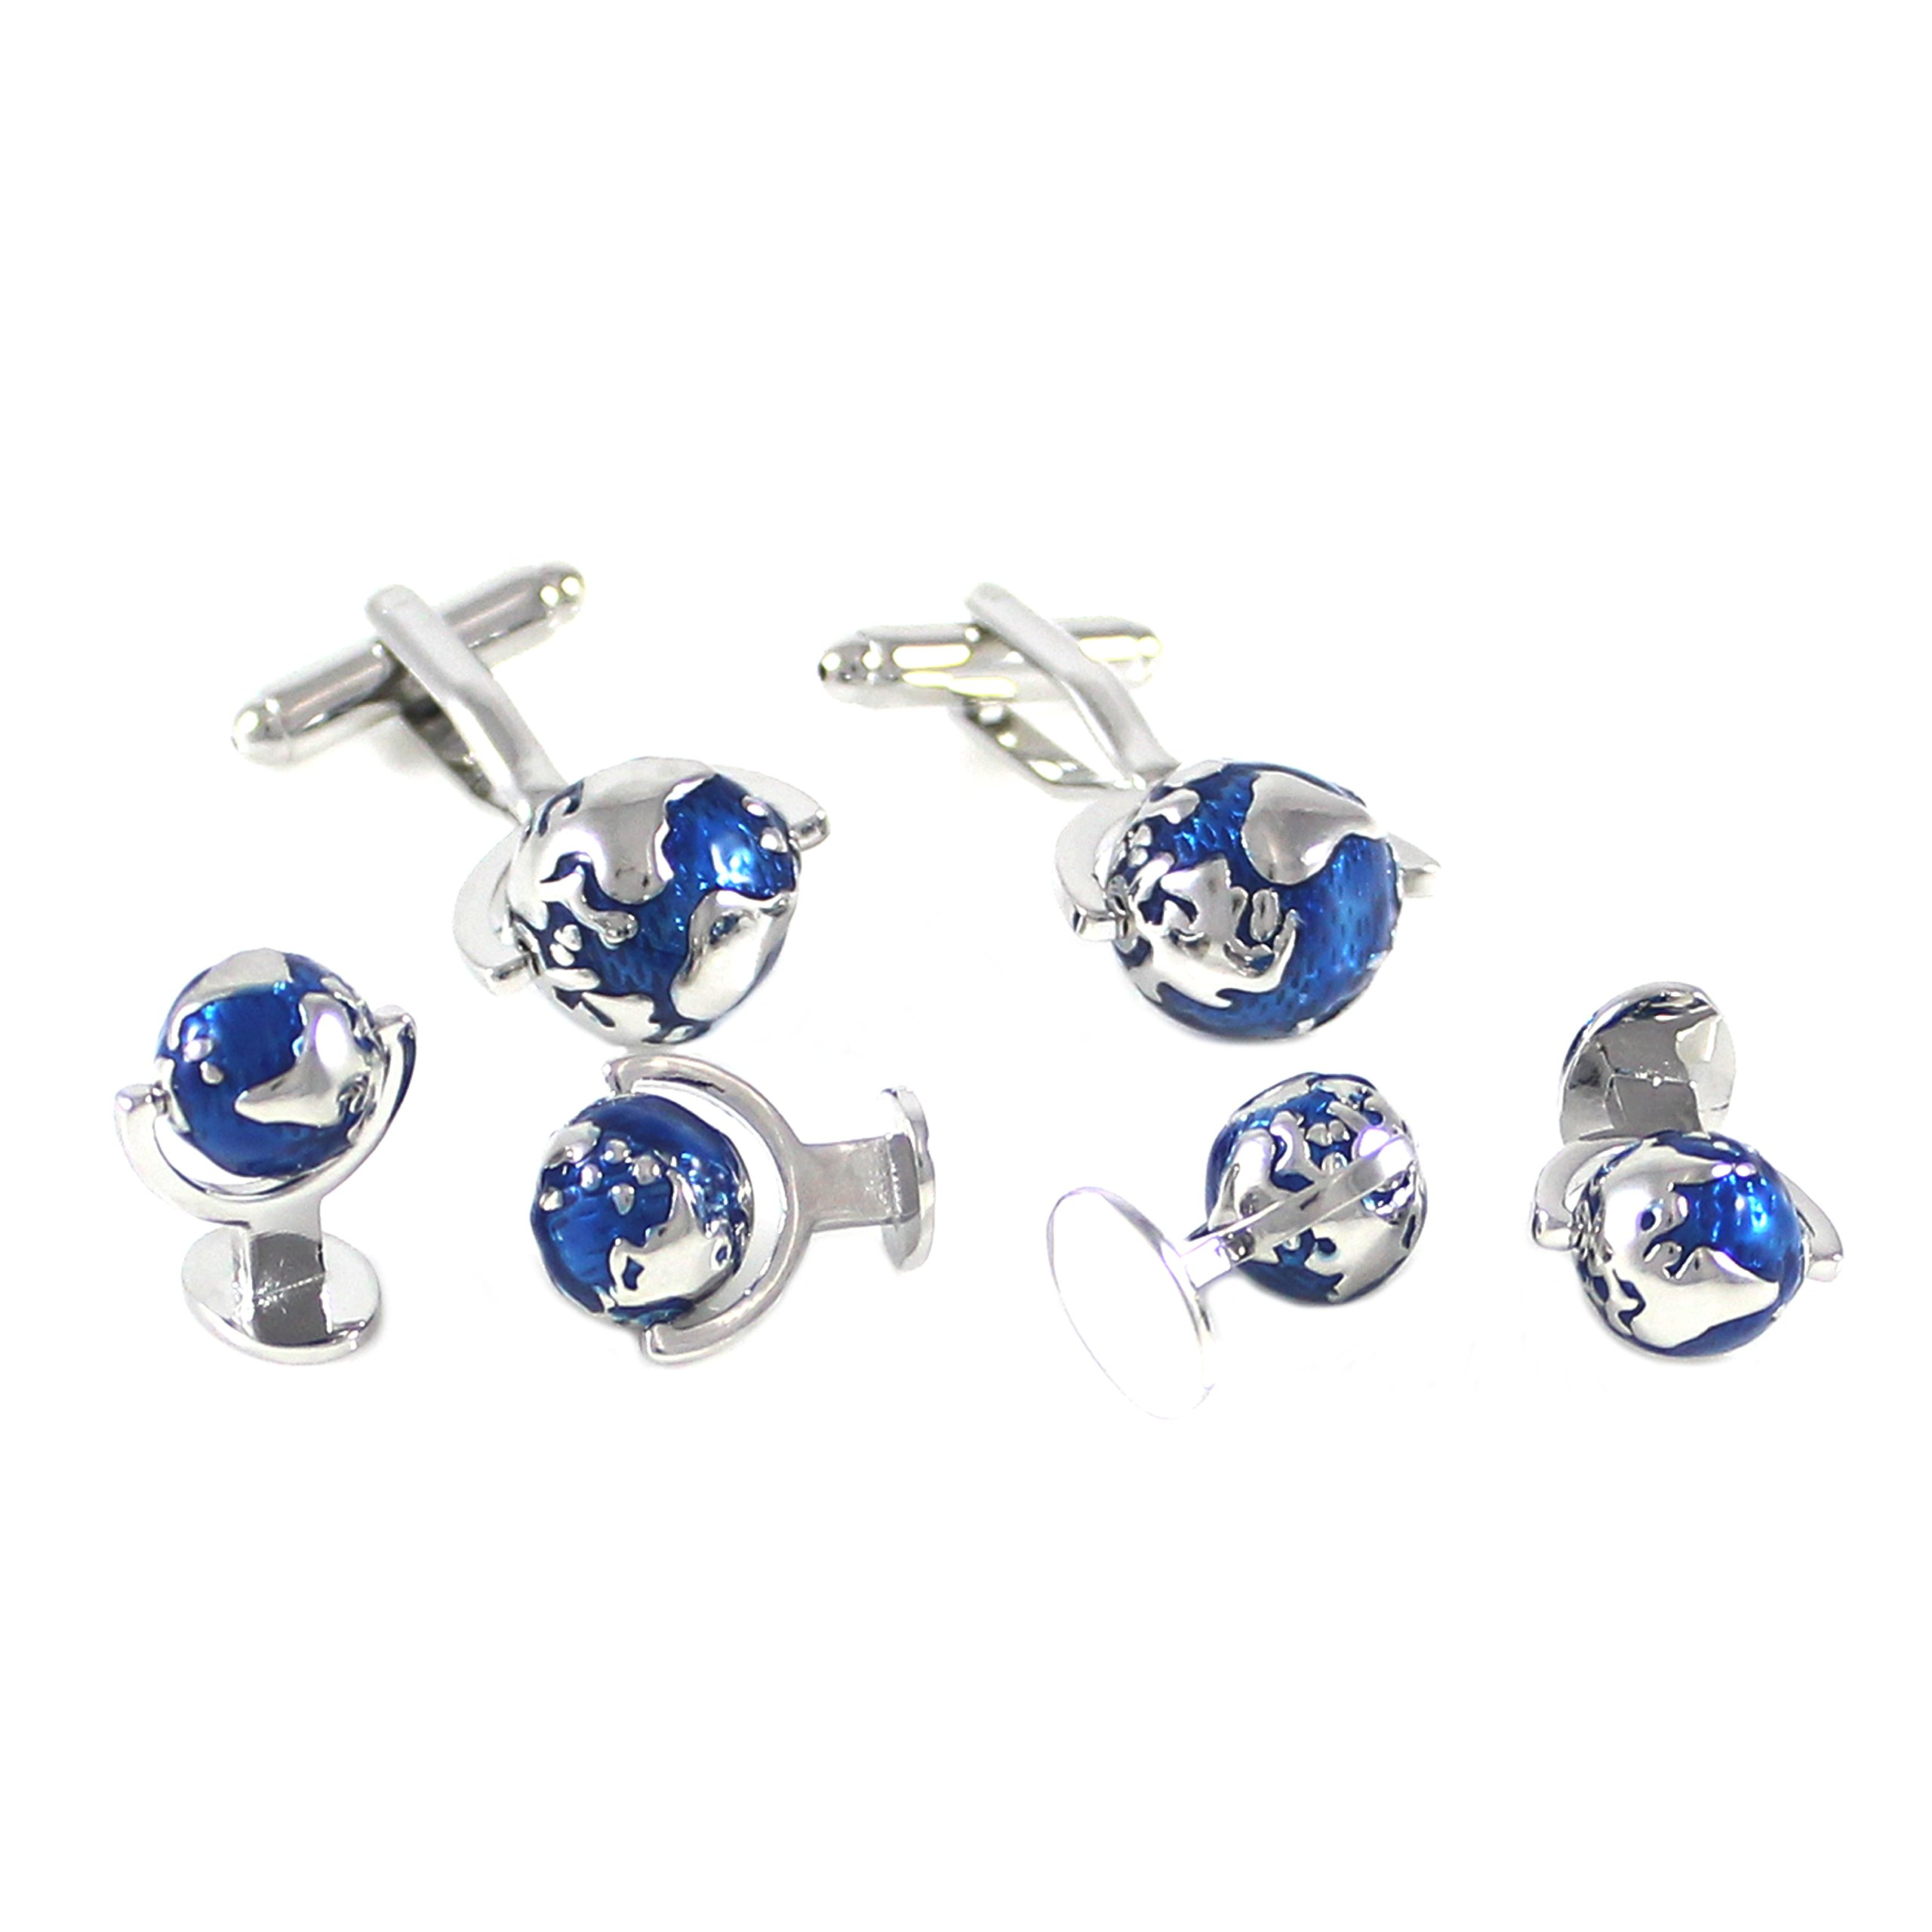 MENDEPOT Classic Rhodium Plated Blue And Silver Globe Cuff Link And Shirt Studs Formal Wear Set With Box Earth Planet Suit Set